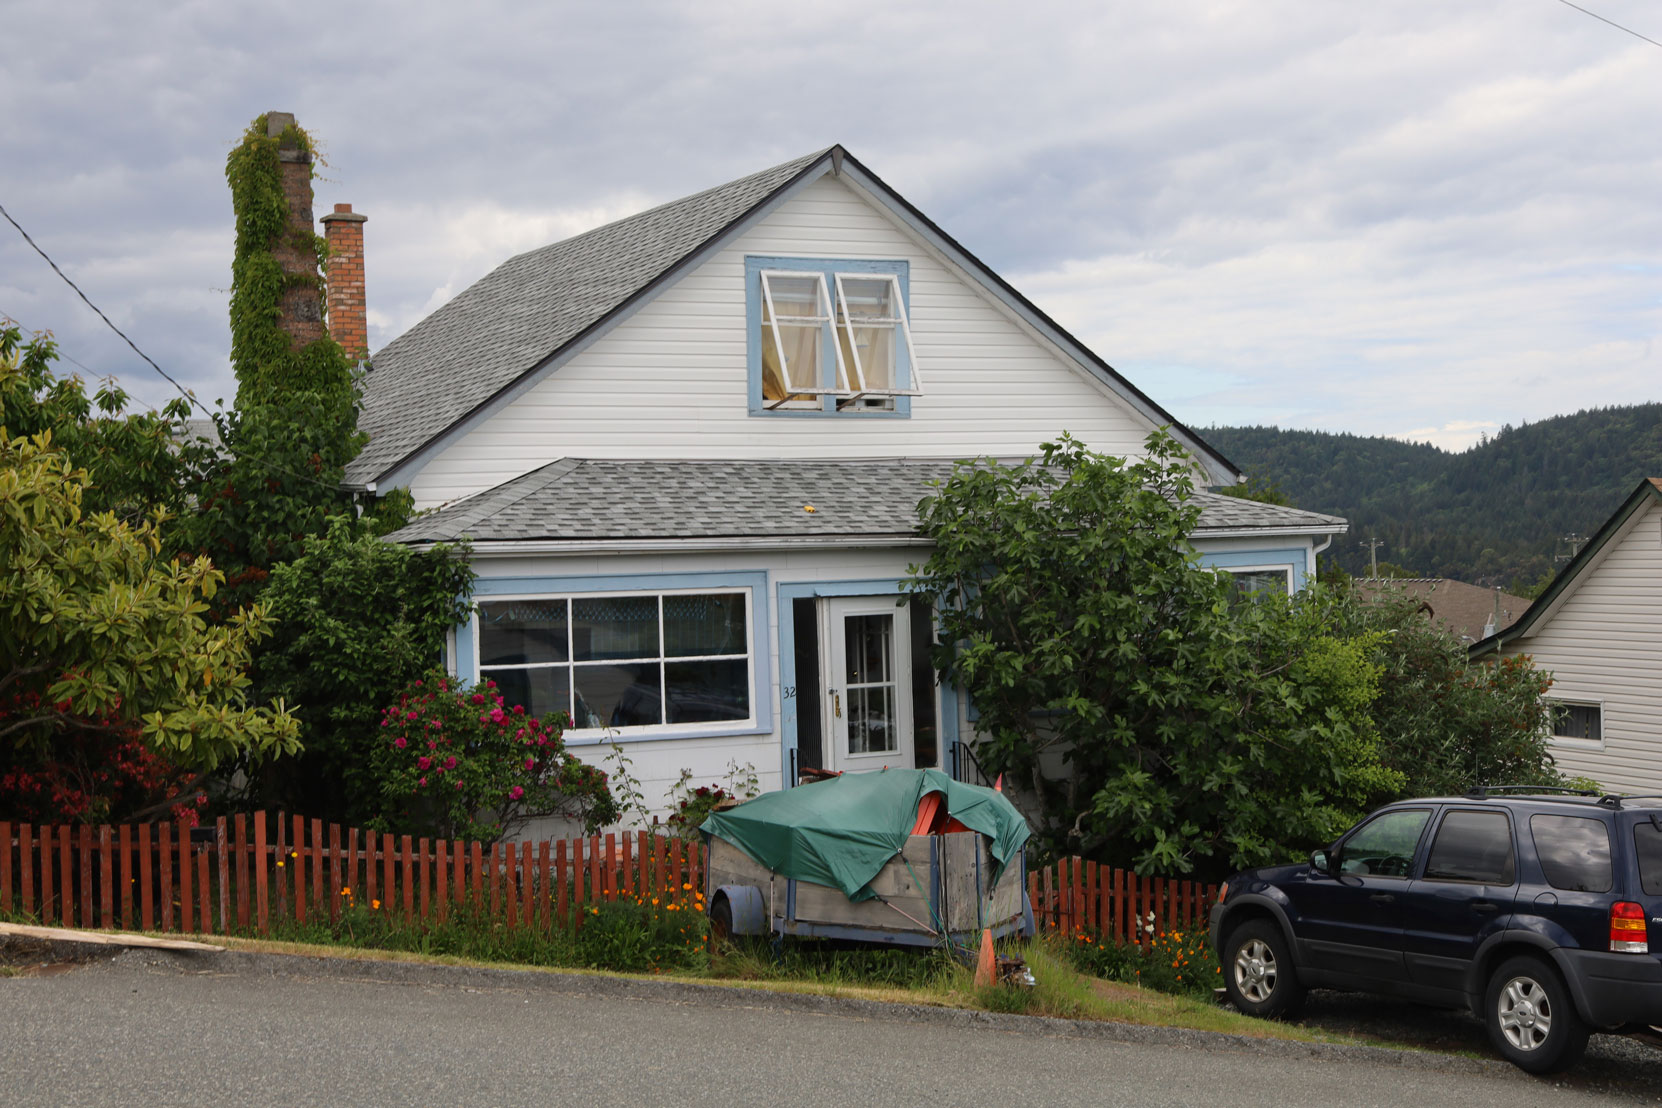 32 Methuen Street. Ladysmith, BC, built in 1930.